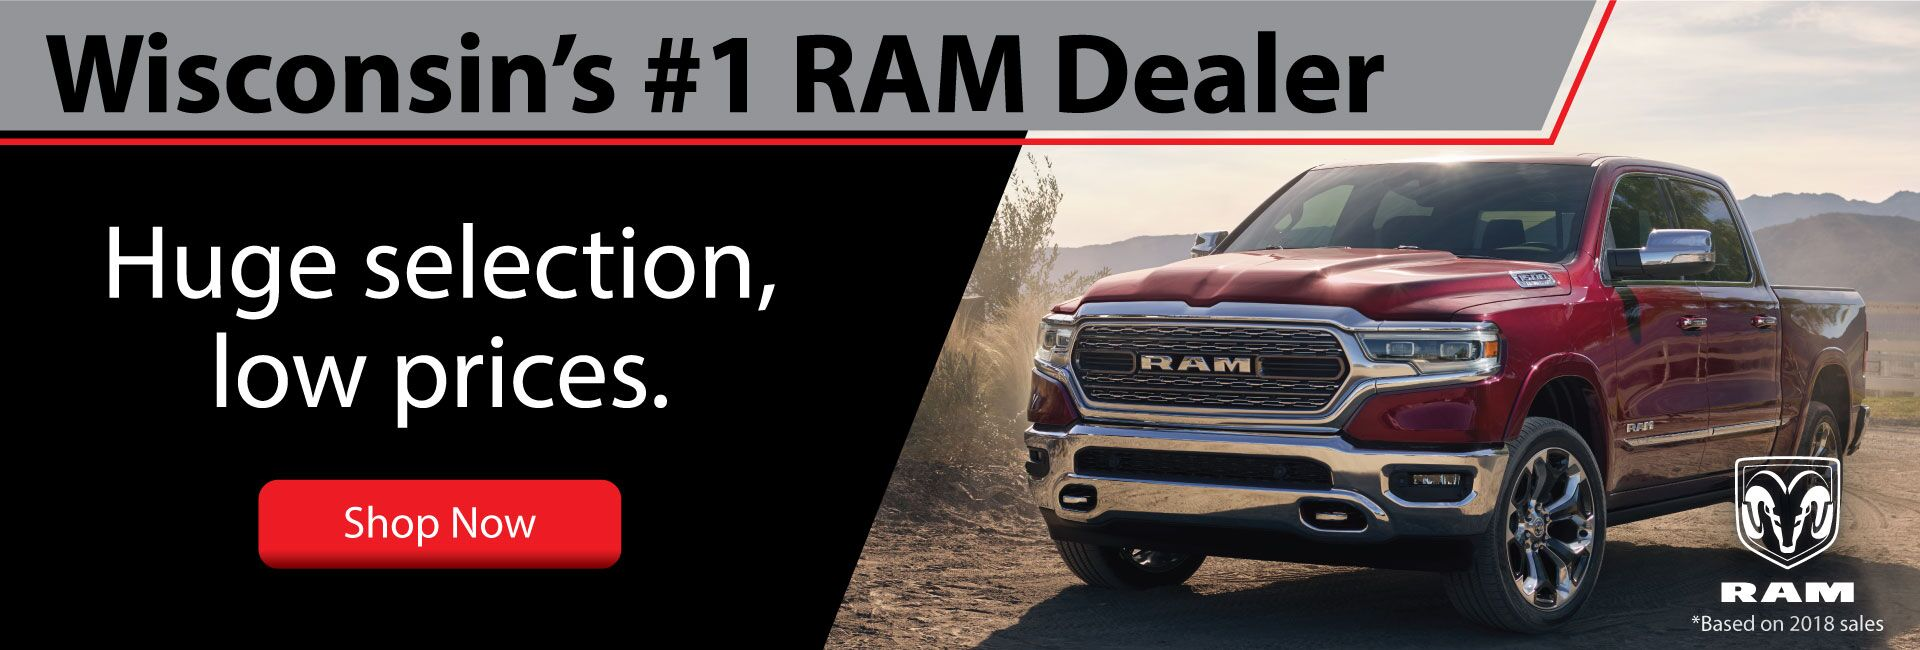 Wisconsin #1 RAM Dealer